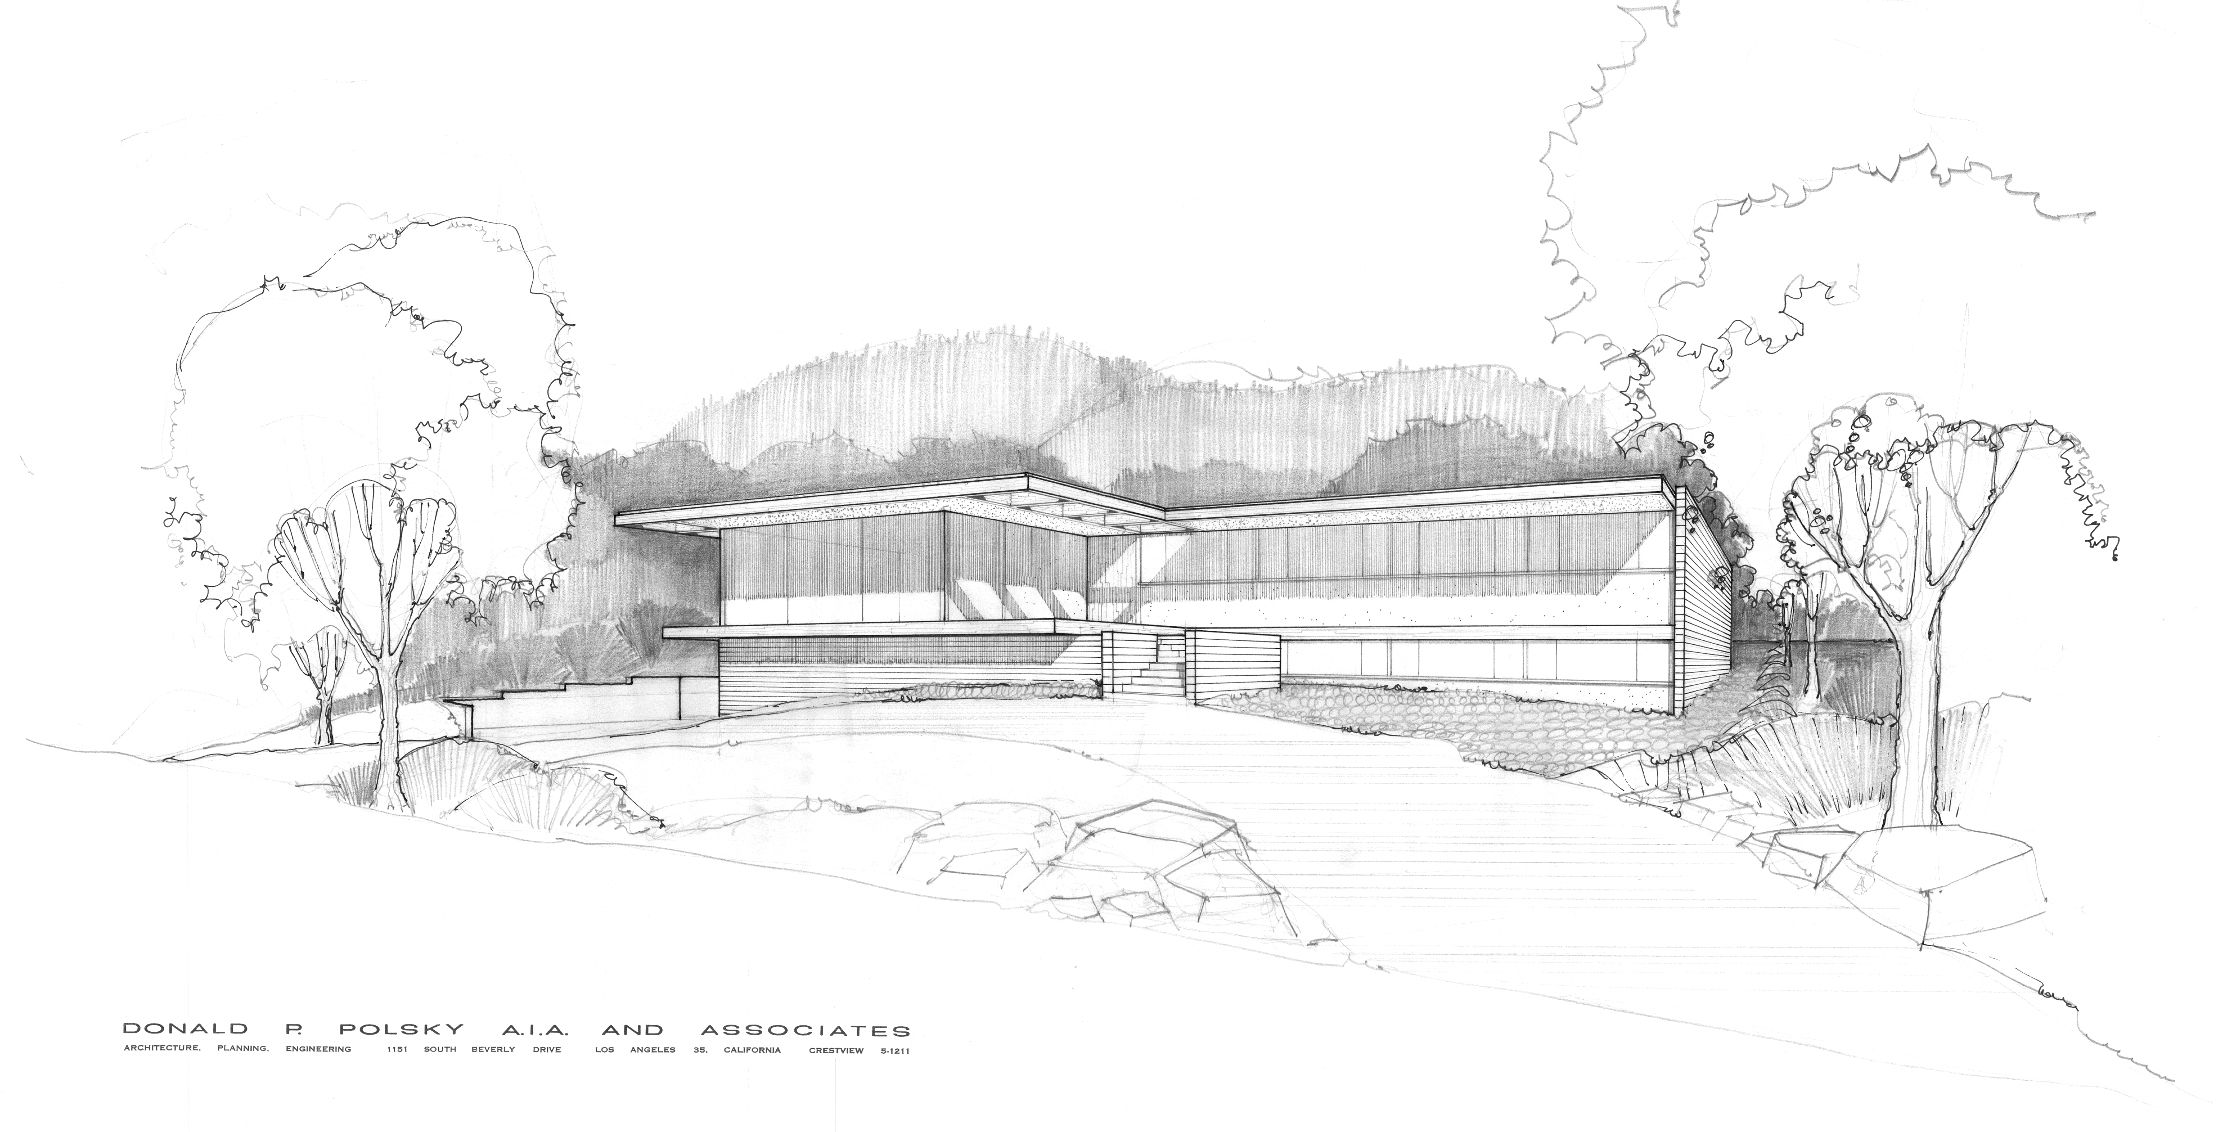 Modern Mid Century Exterior House Sketch Drawing Google Search Illustration Pinterest